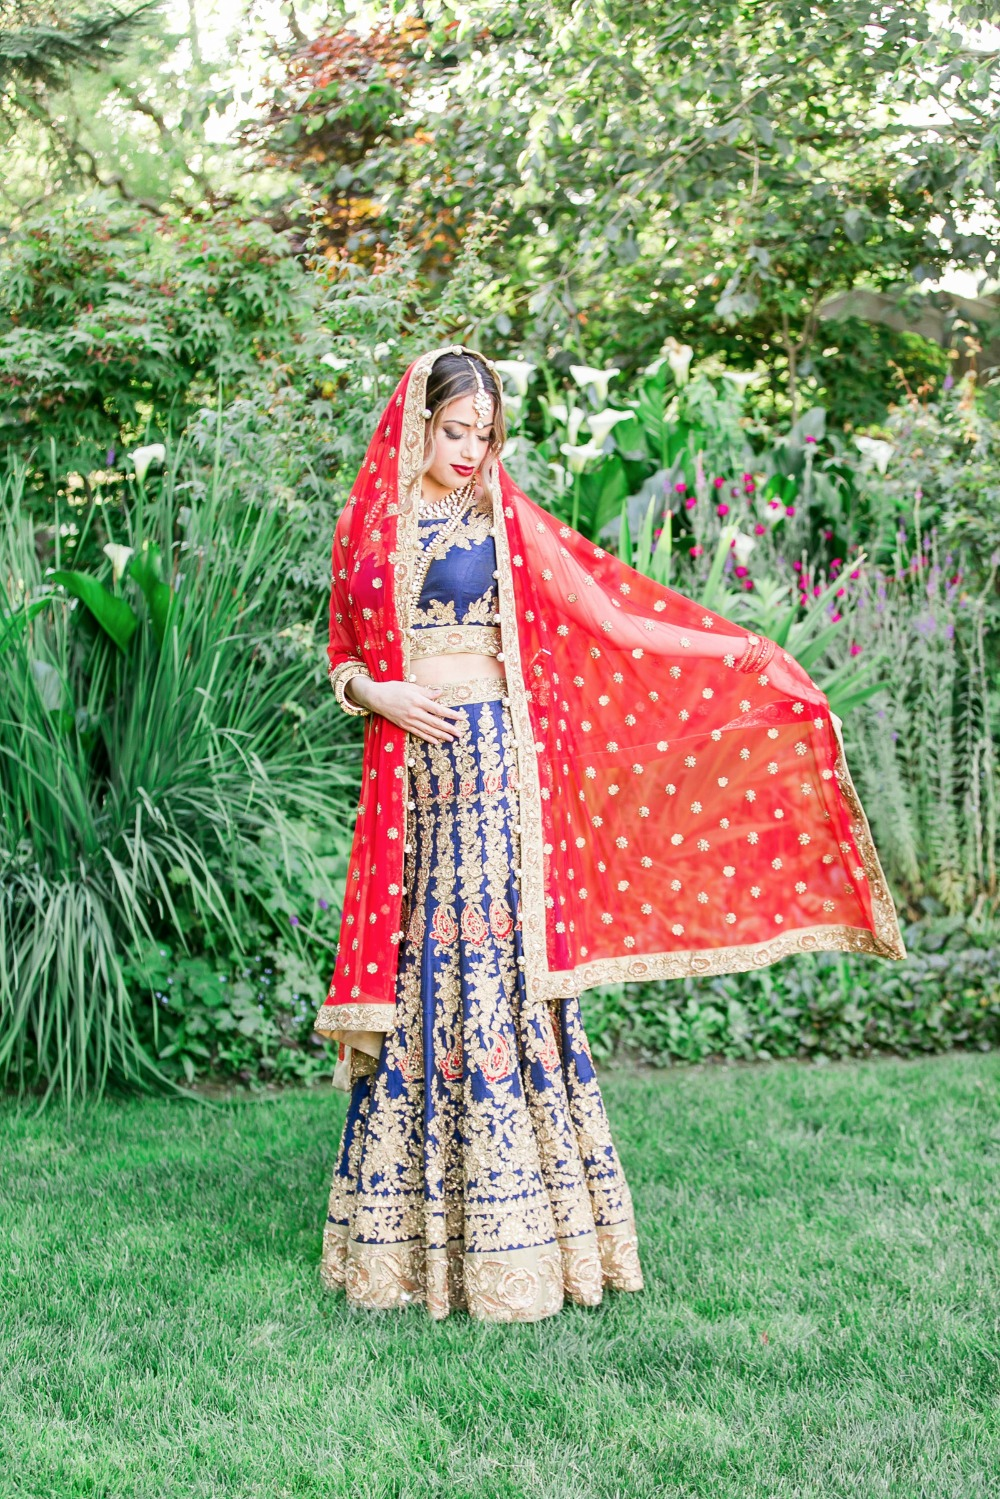 Tradition Indian dress